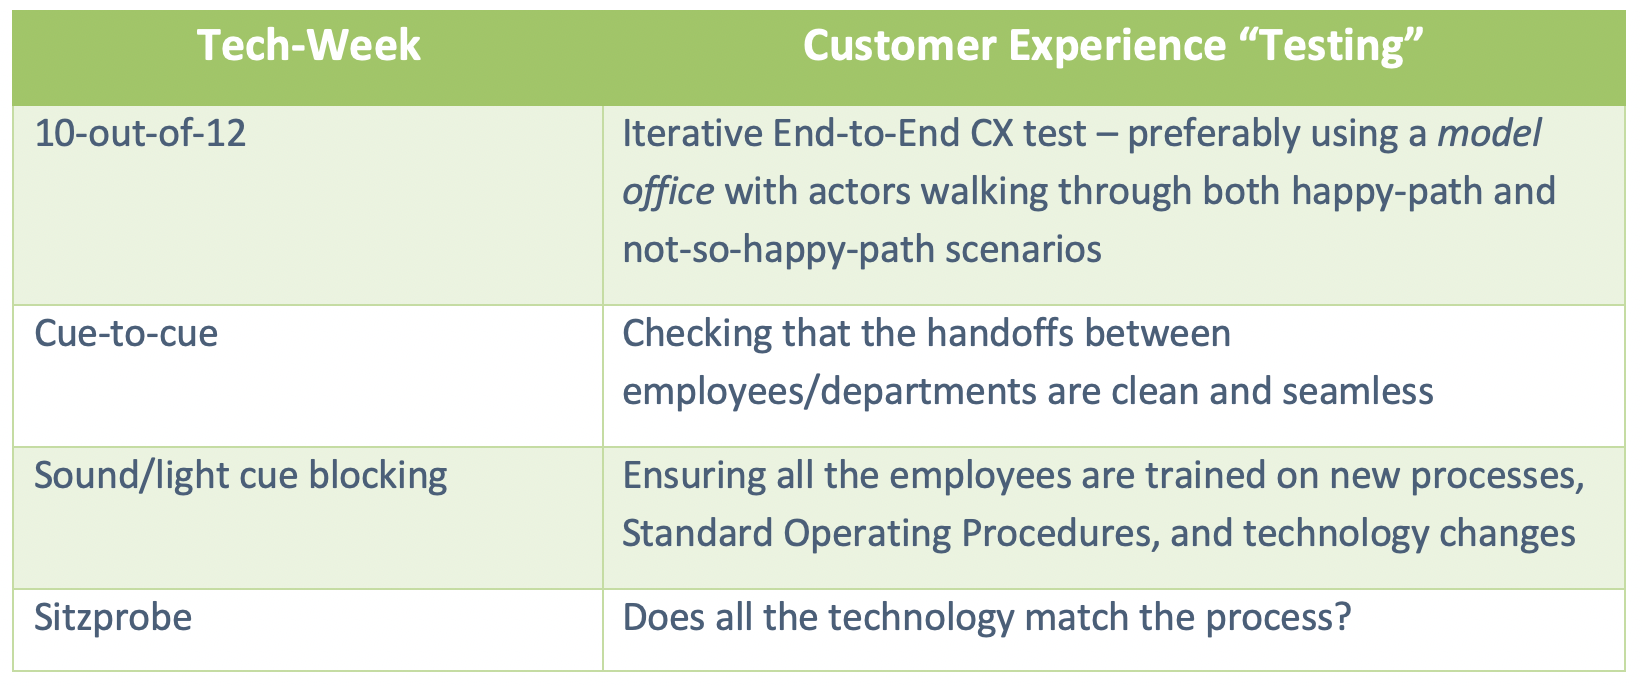 The Parallel Between Tech-Week and the Customer Experience